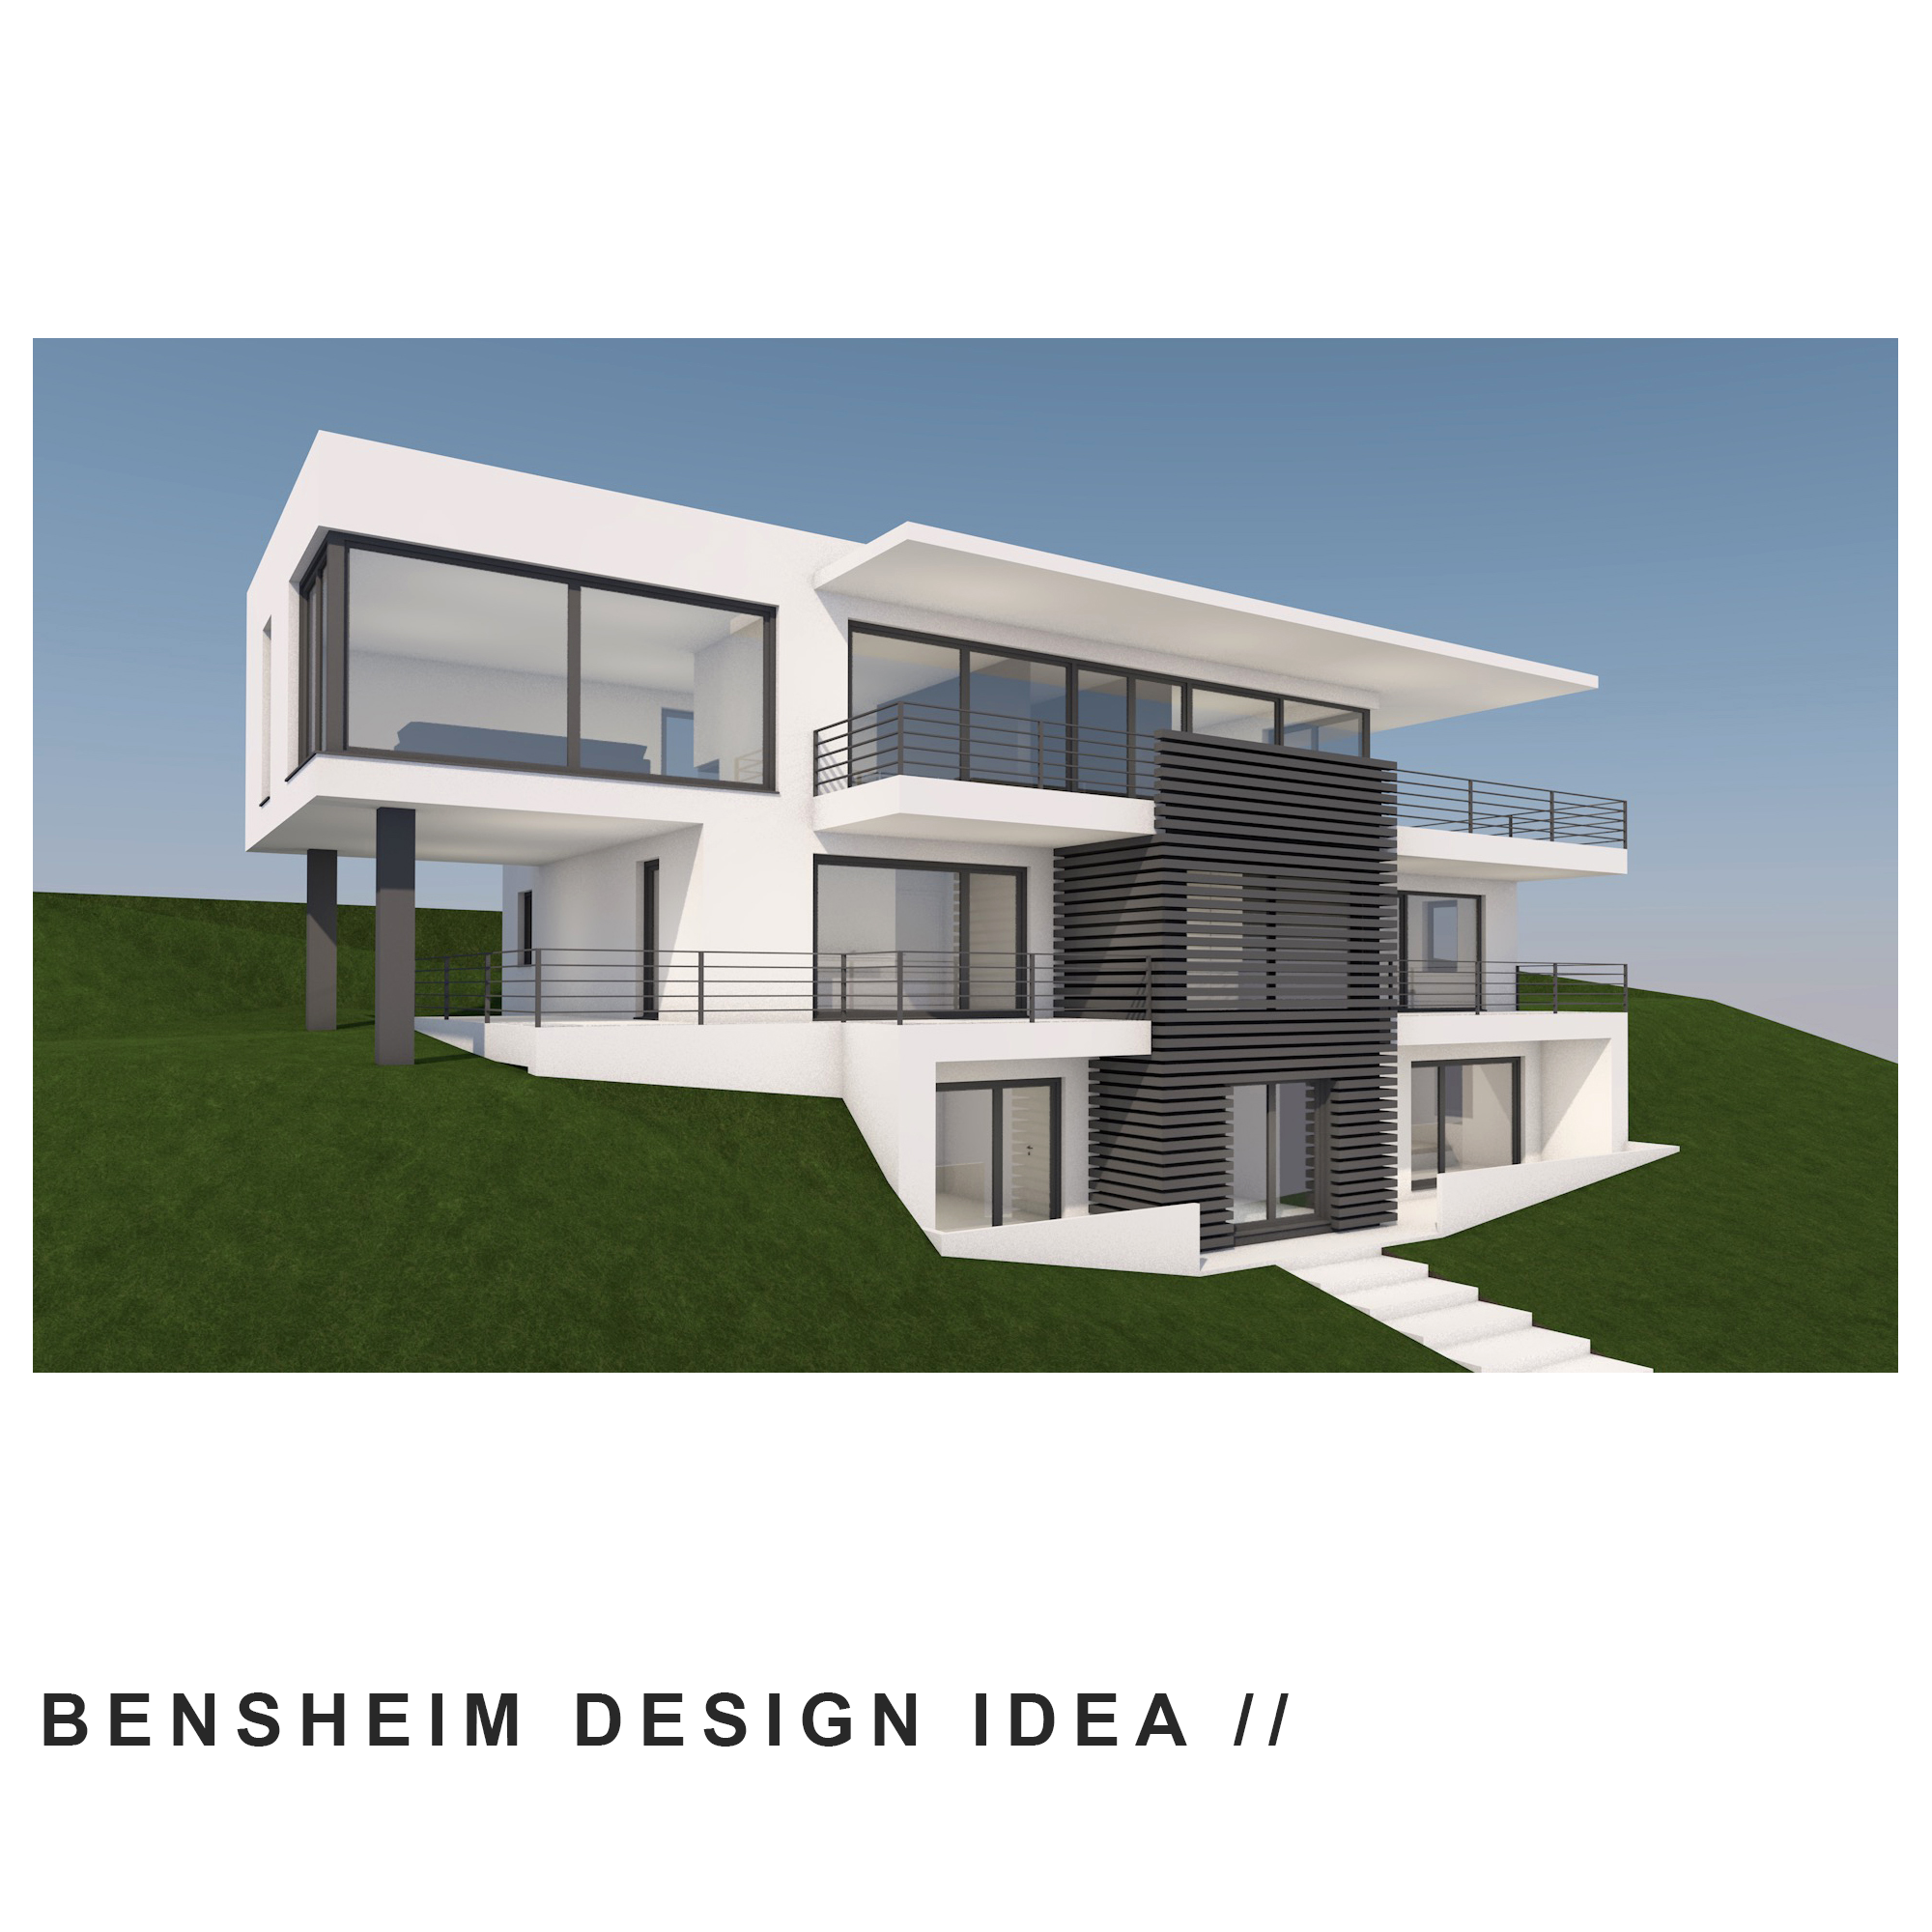 Design idea for the construction of an exclusive residential house ...